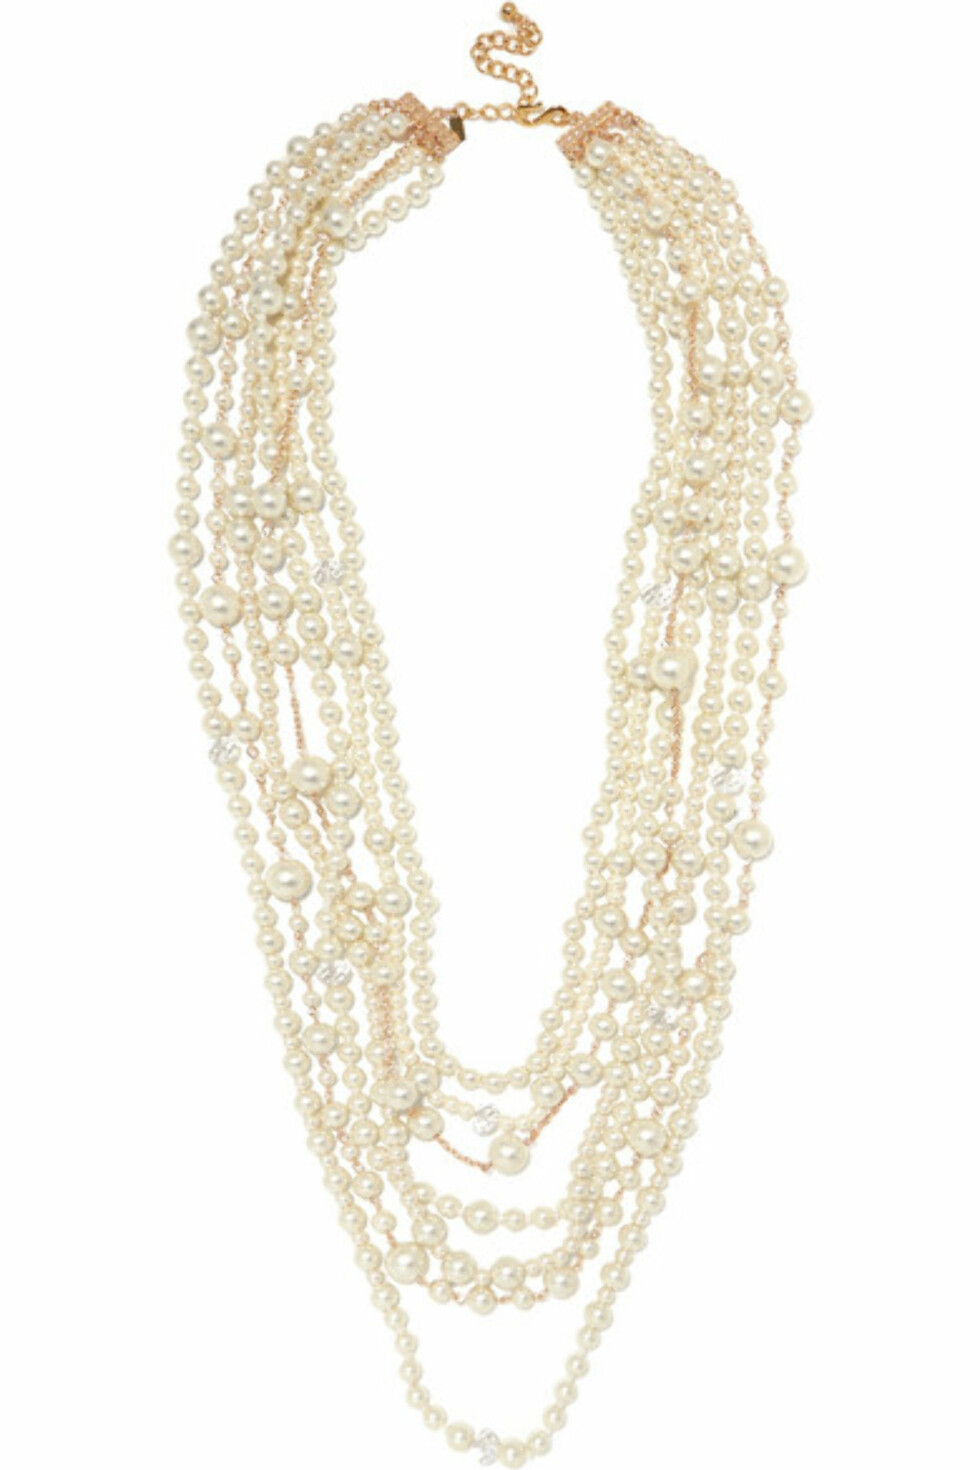 Kjede fra Kenneth Jay Lane |2500,-| https://www.net-a-porter.com/no/en/product/999816/Kenneth_Jay_Lane/gold-plated-crystal-and-faux-pearl-necklace